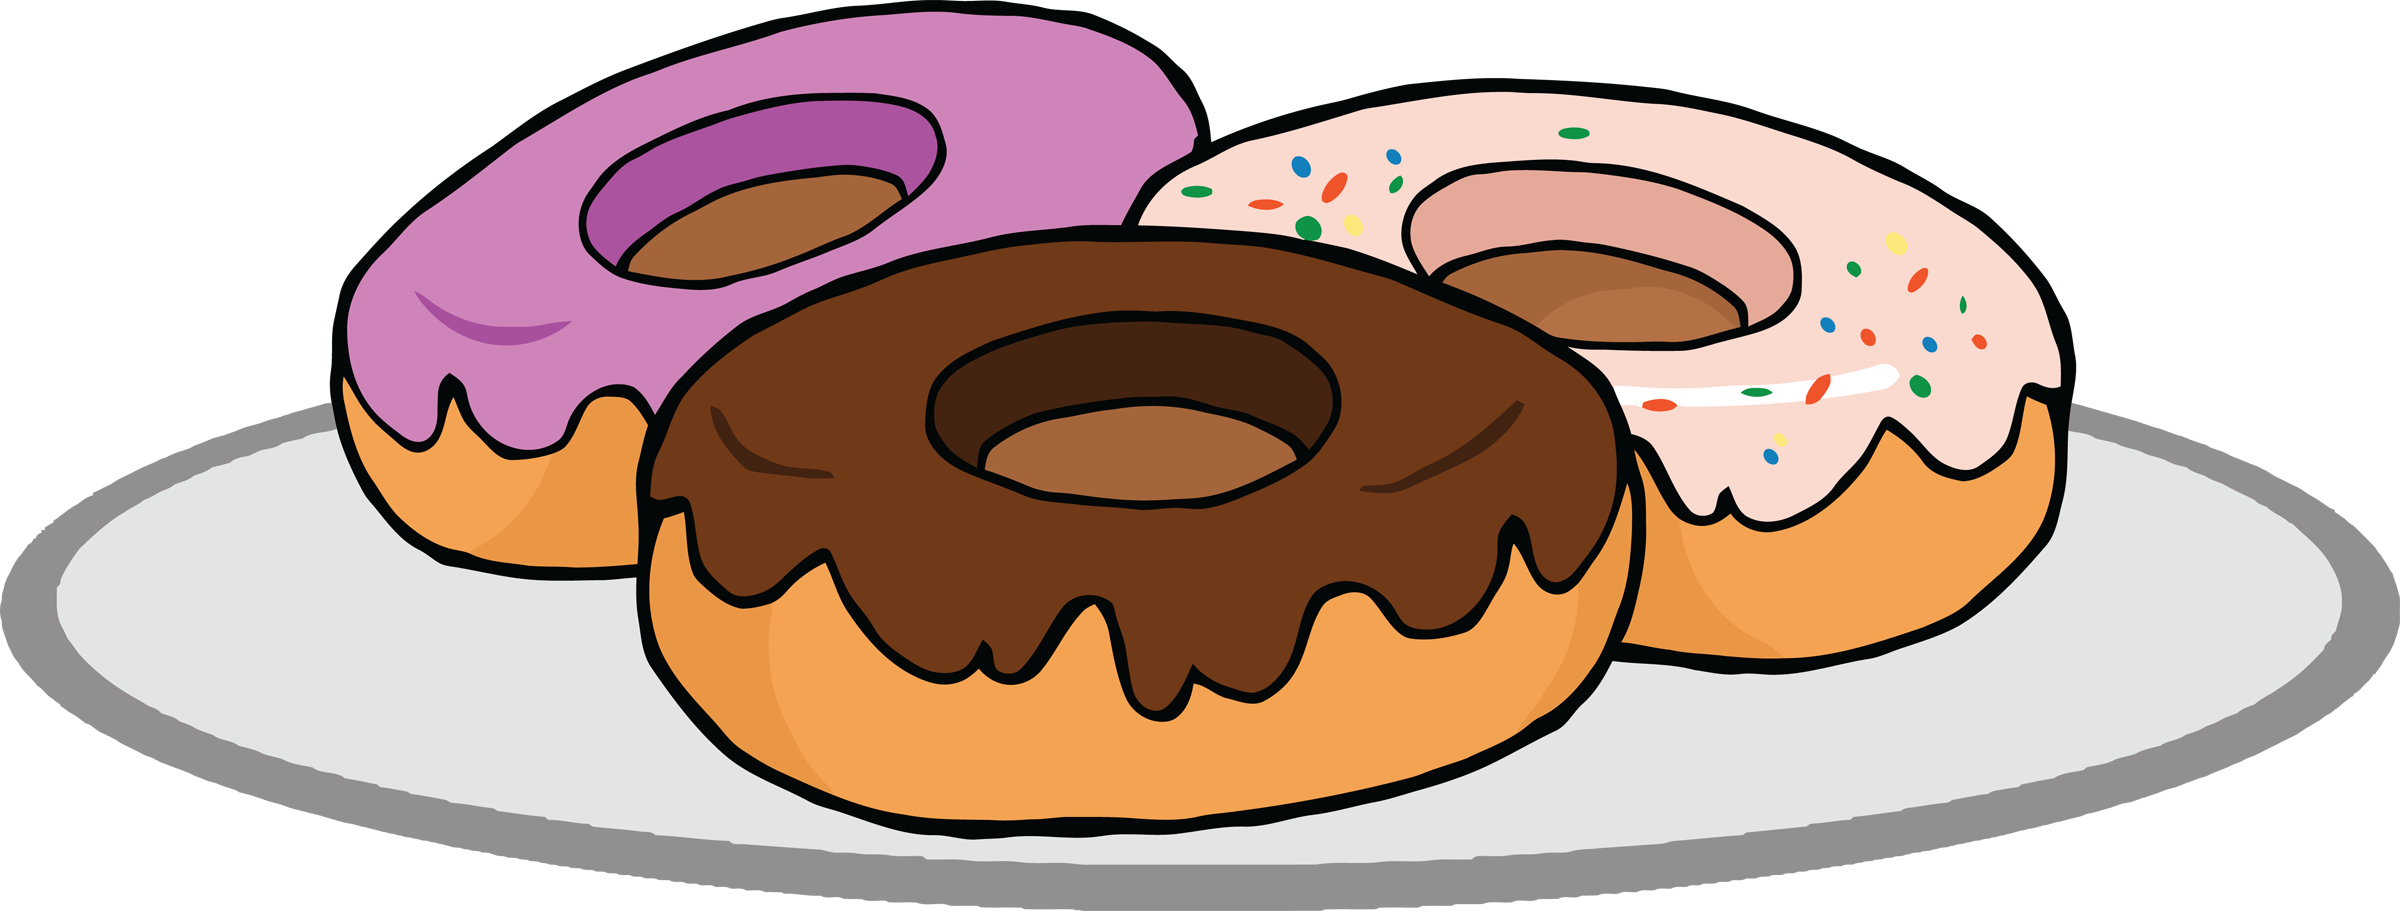 donut clip art 13588 recipes pinterest donuts and recipes rh pinterest com donut clipart border donuts clipart free